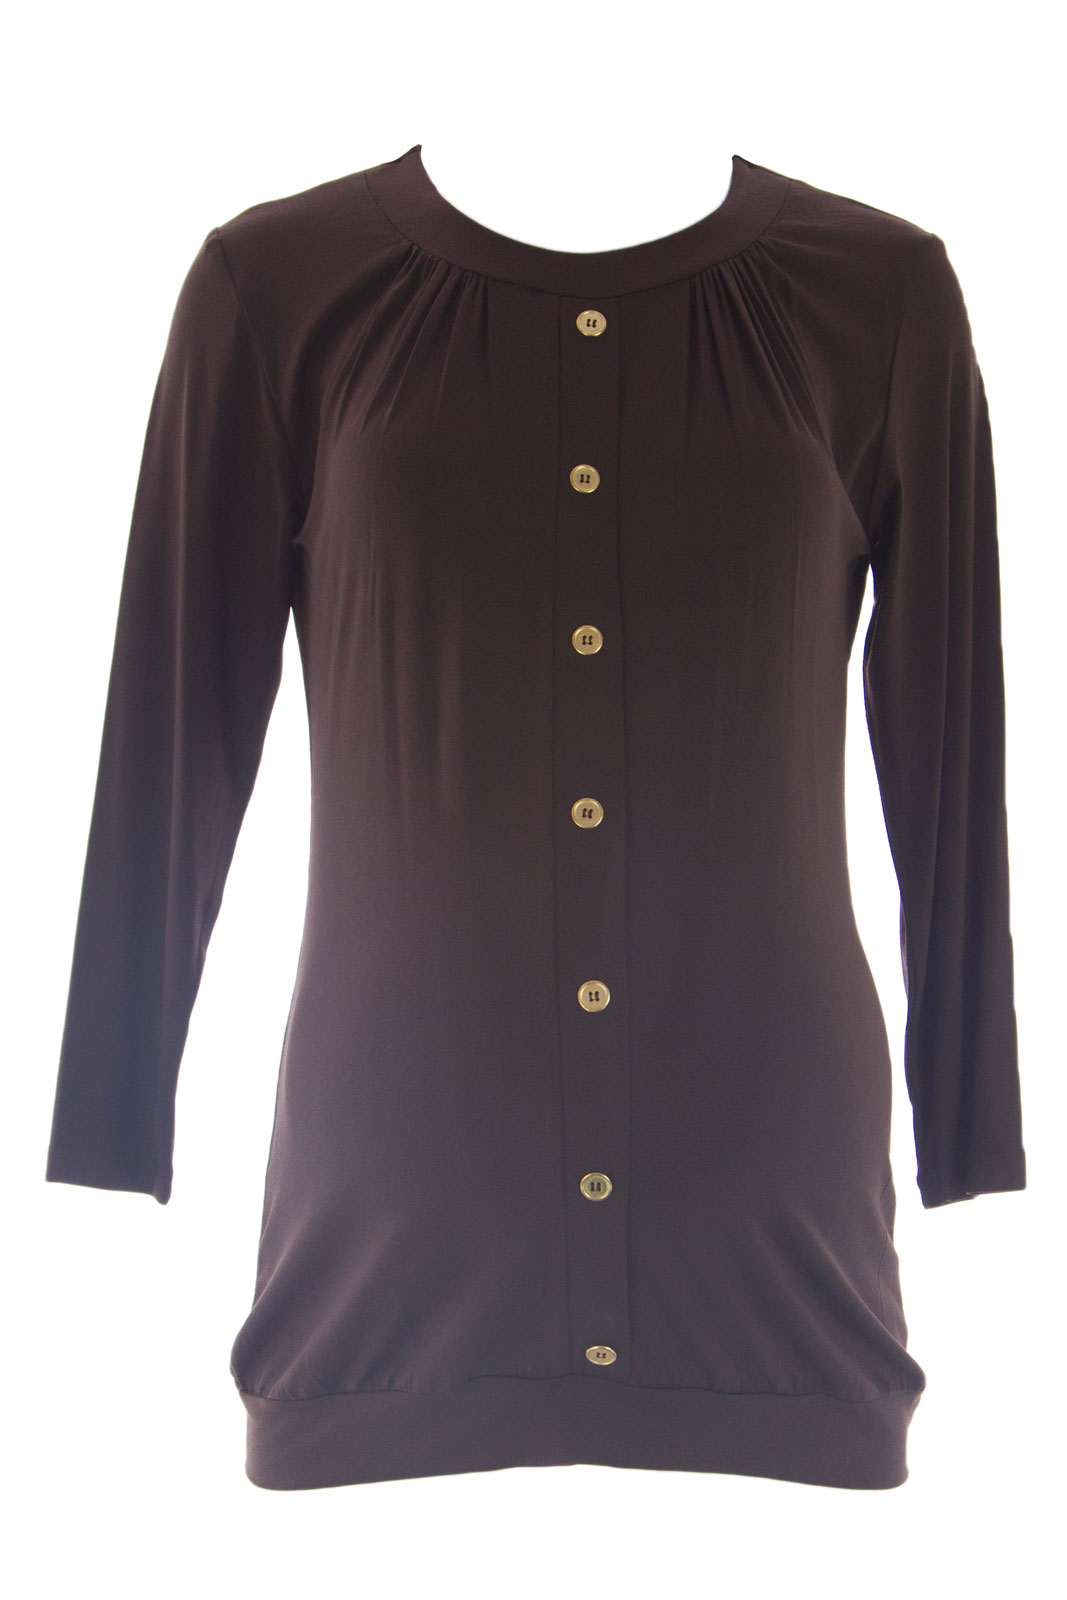 OLIAN Maternity Women's Metal Buttons Front Accent Tunic Top Medium Brown